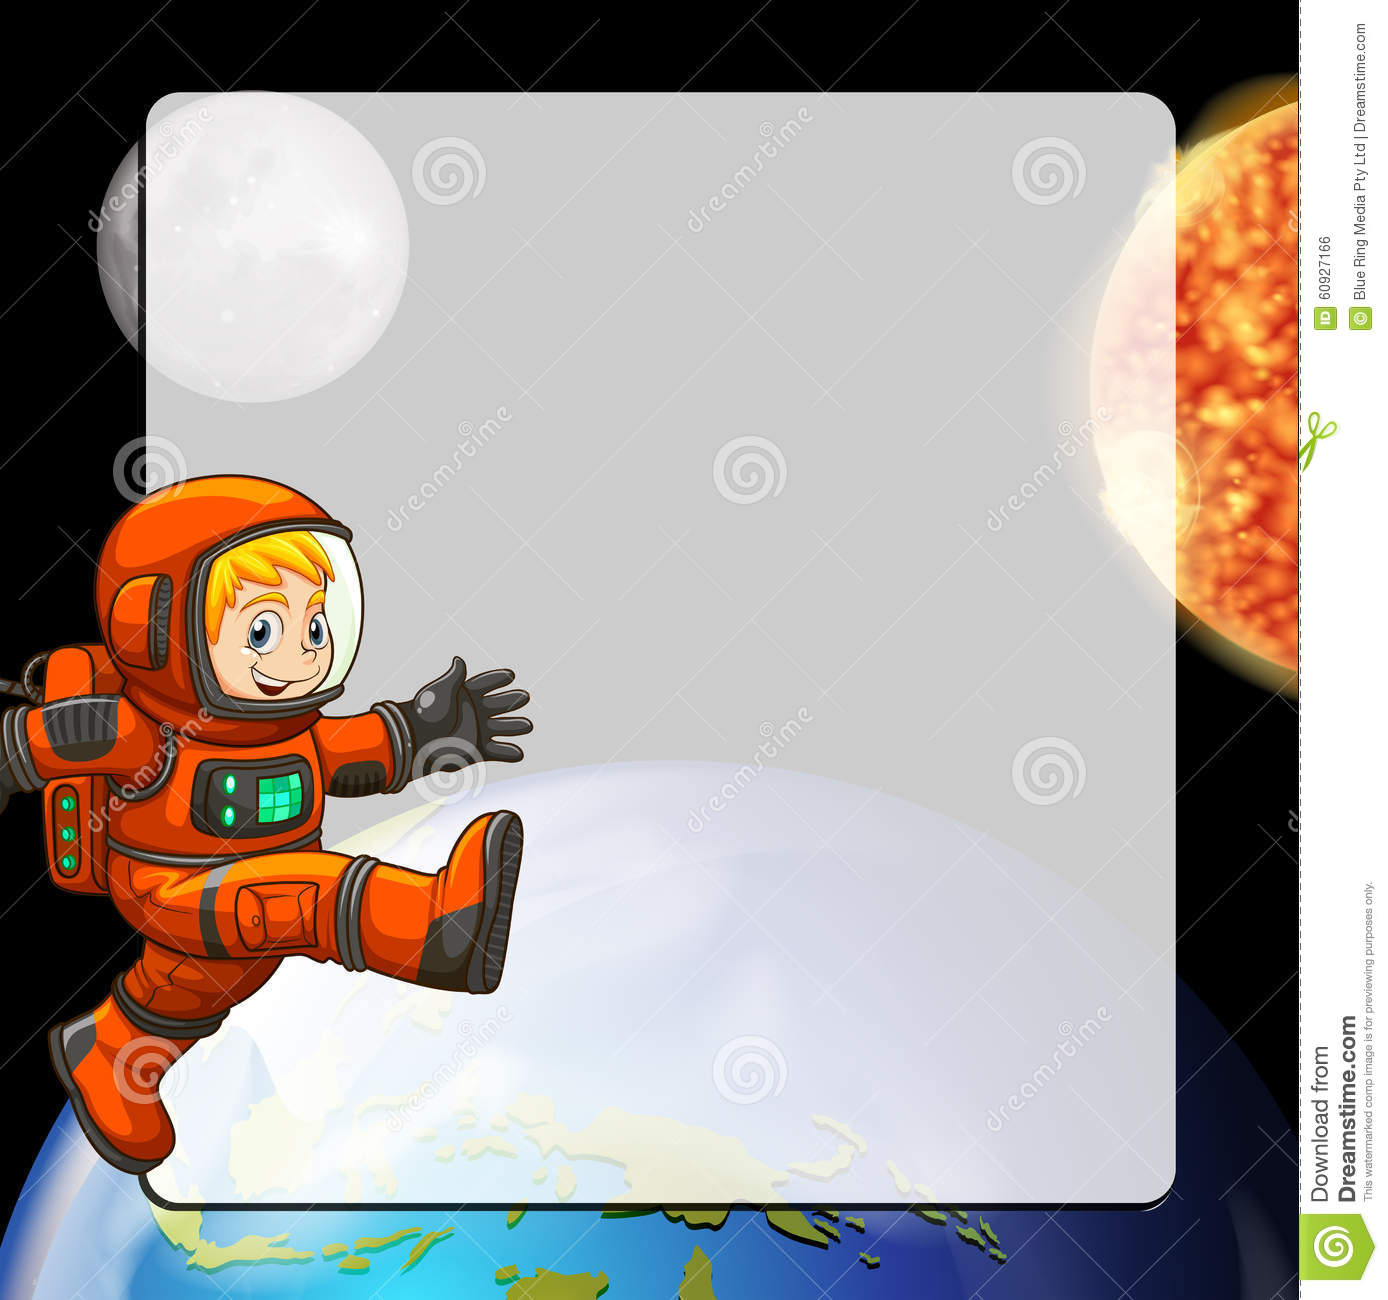 Cartoon Character Border Design : Border design with astronaut in space stock illustration